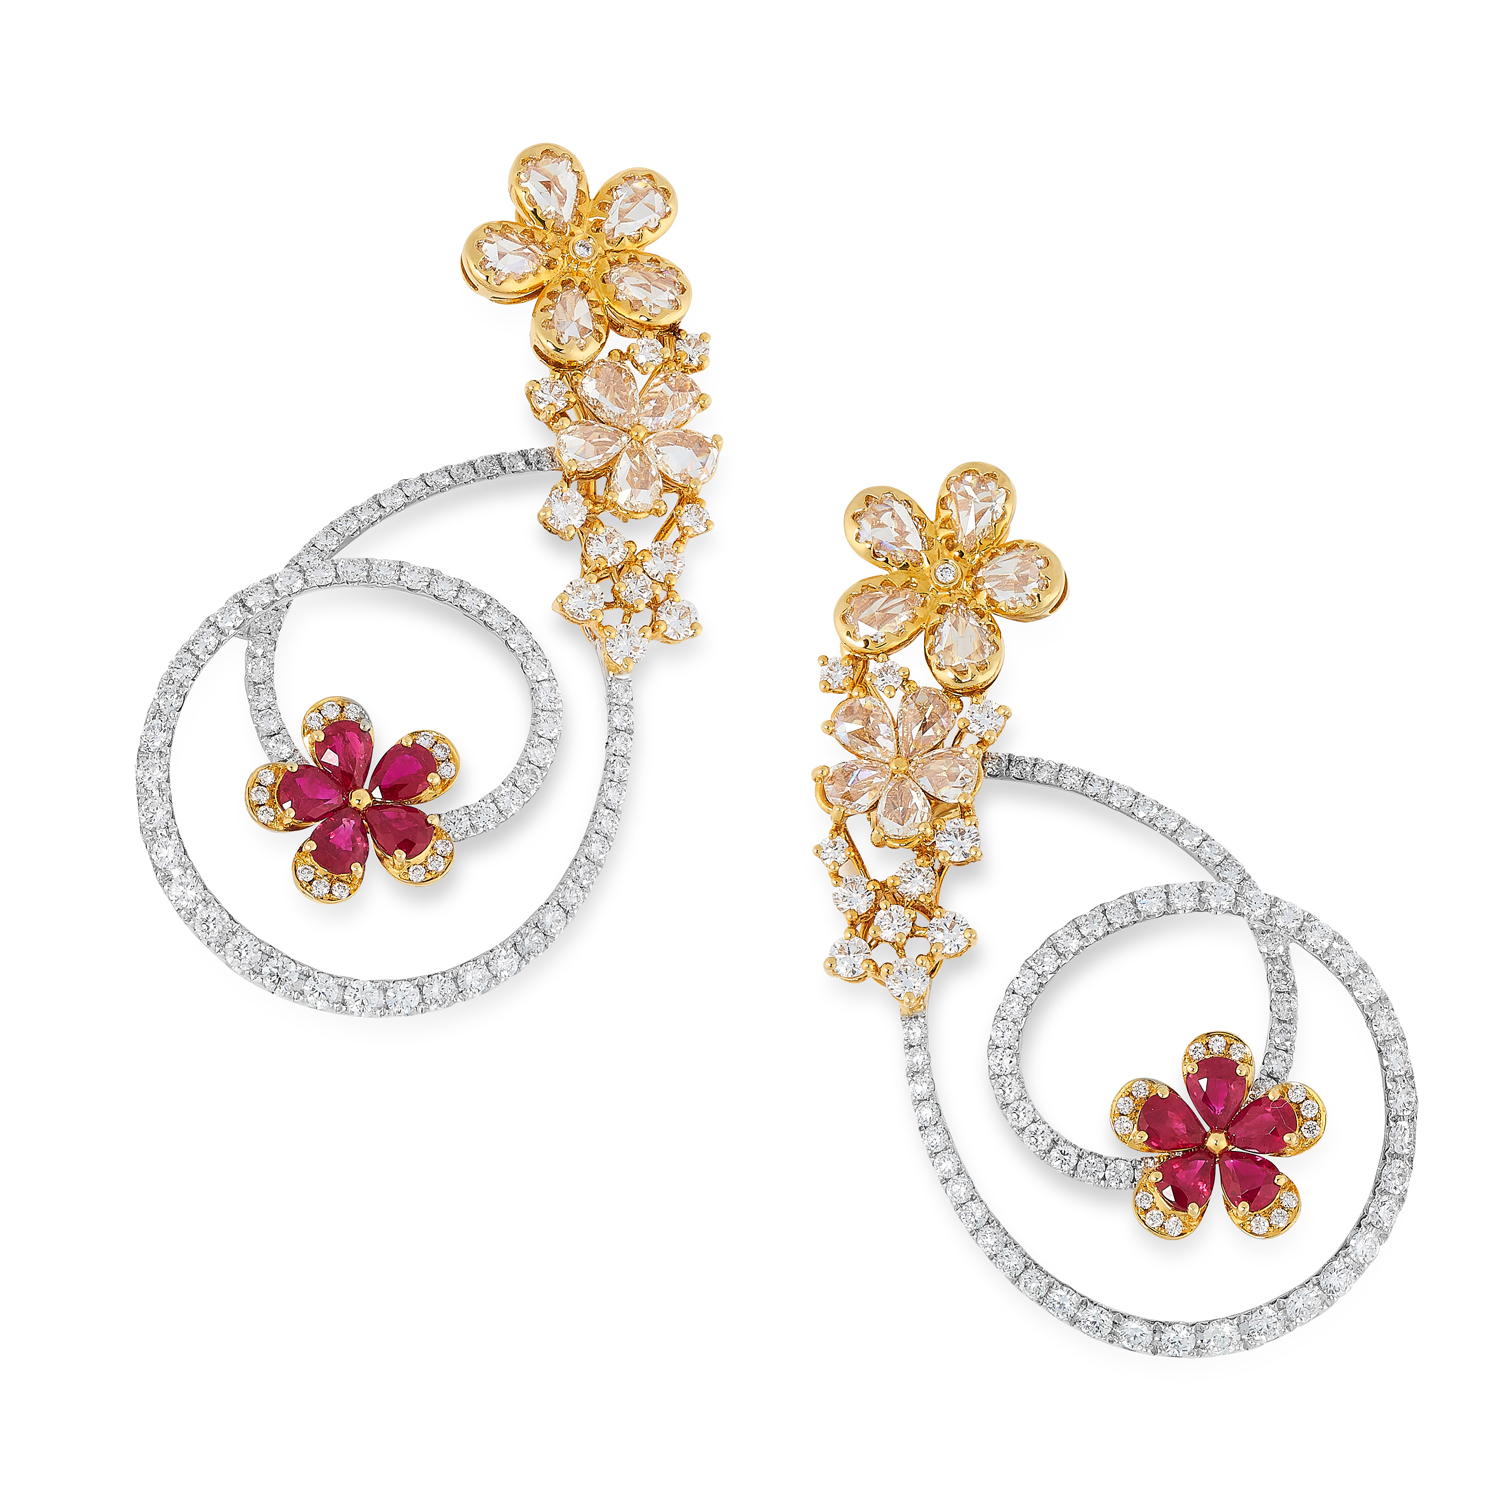 A PAIR OF DIAMOND AND RUBY EARRINGS in 18ct gold, in open floral design set with round and rose